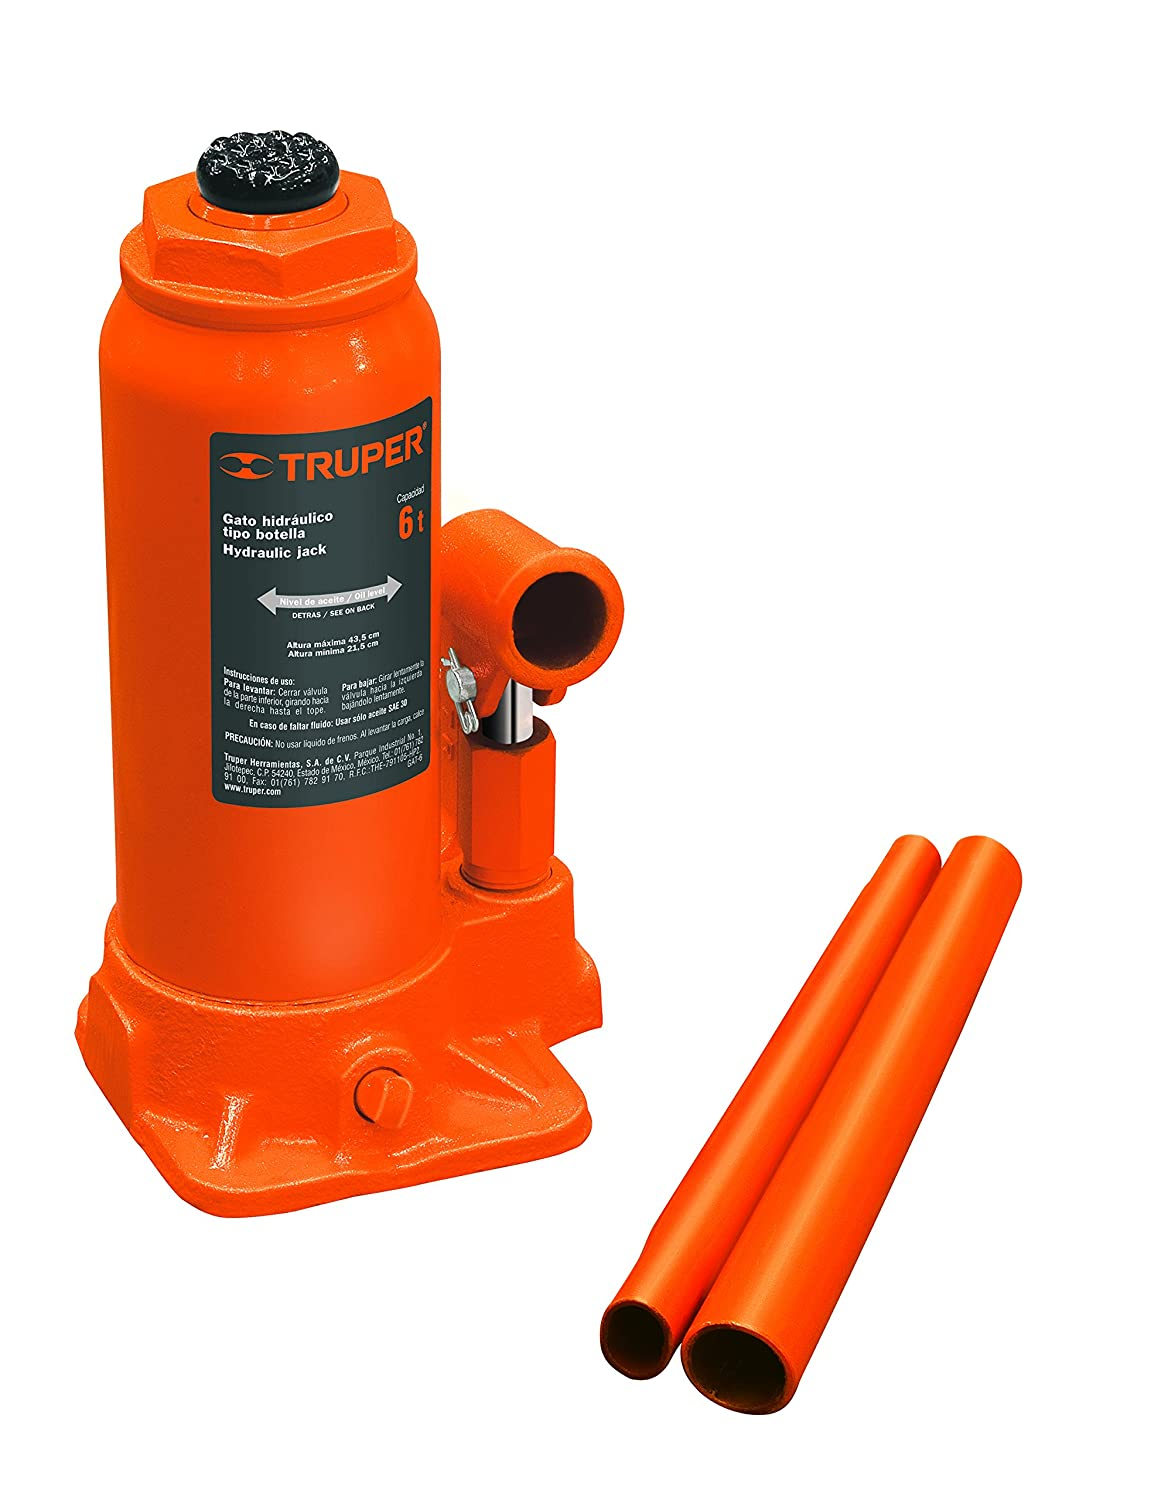 Amazon.com: TRUPER GAT-6 6-Ton Hydraulic Bottle Jacks 17 1/8 ...